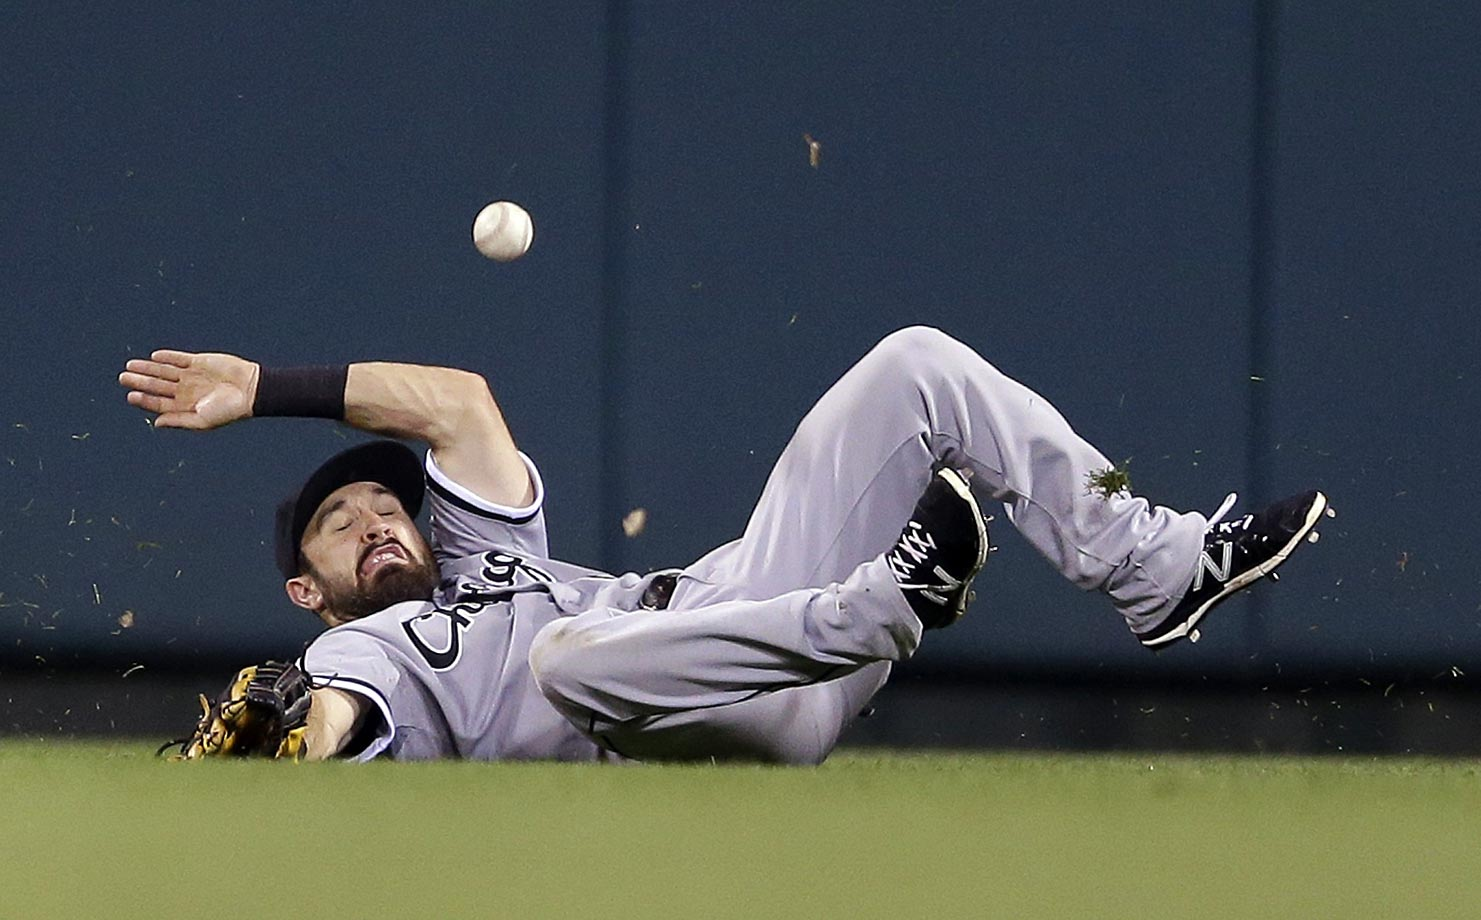 Adam Eaton of the Chicago White Sox lost his footing on this play, allowing Mark Reynolds of the Cardinals a triple.